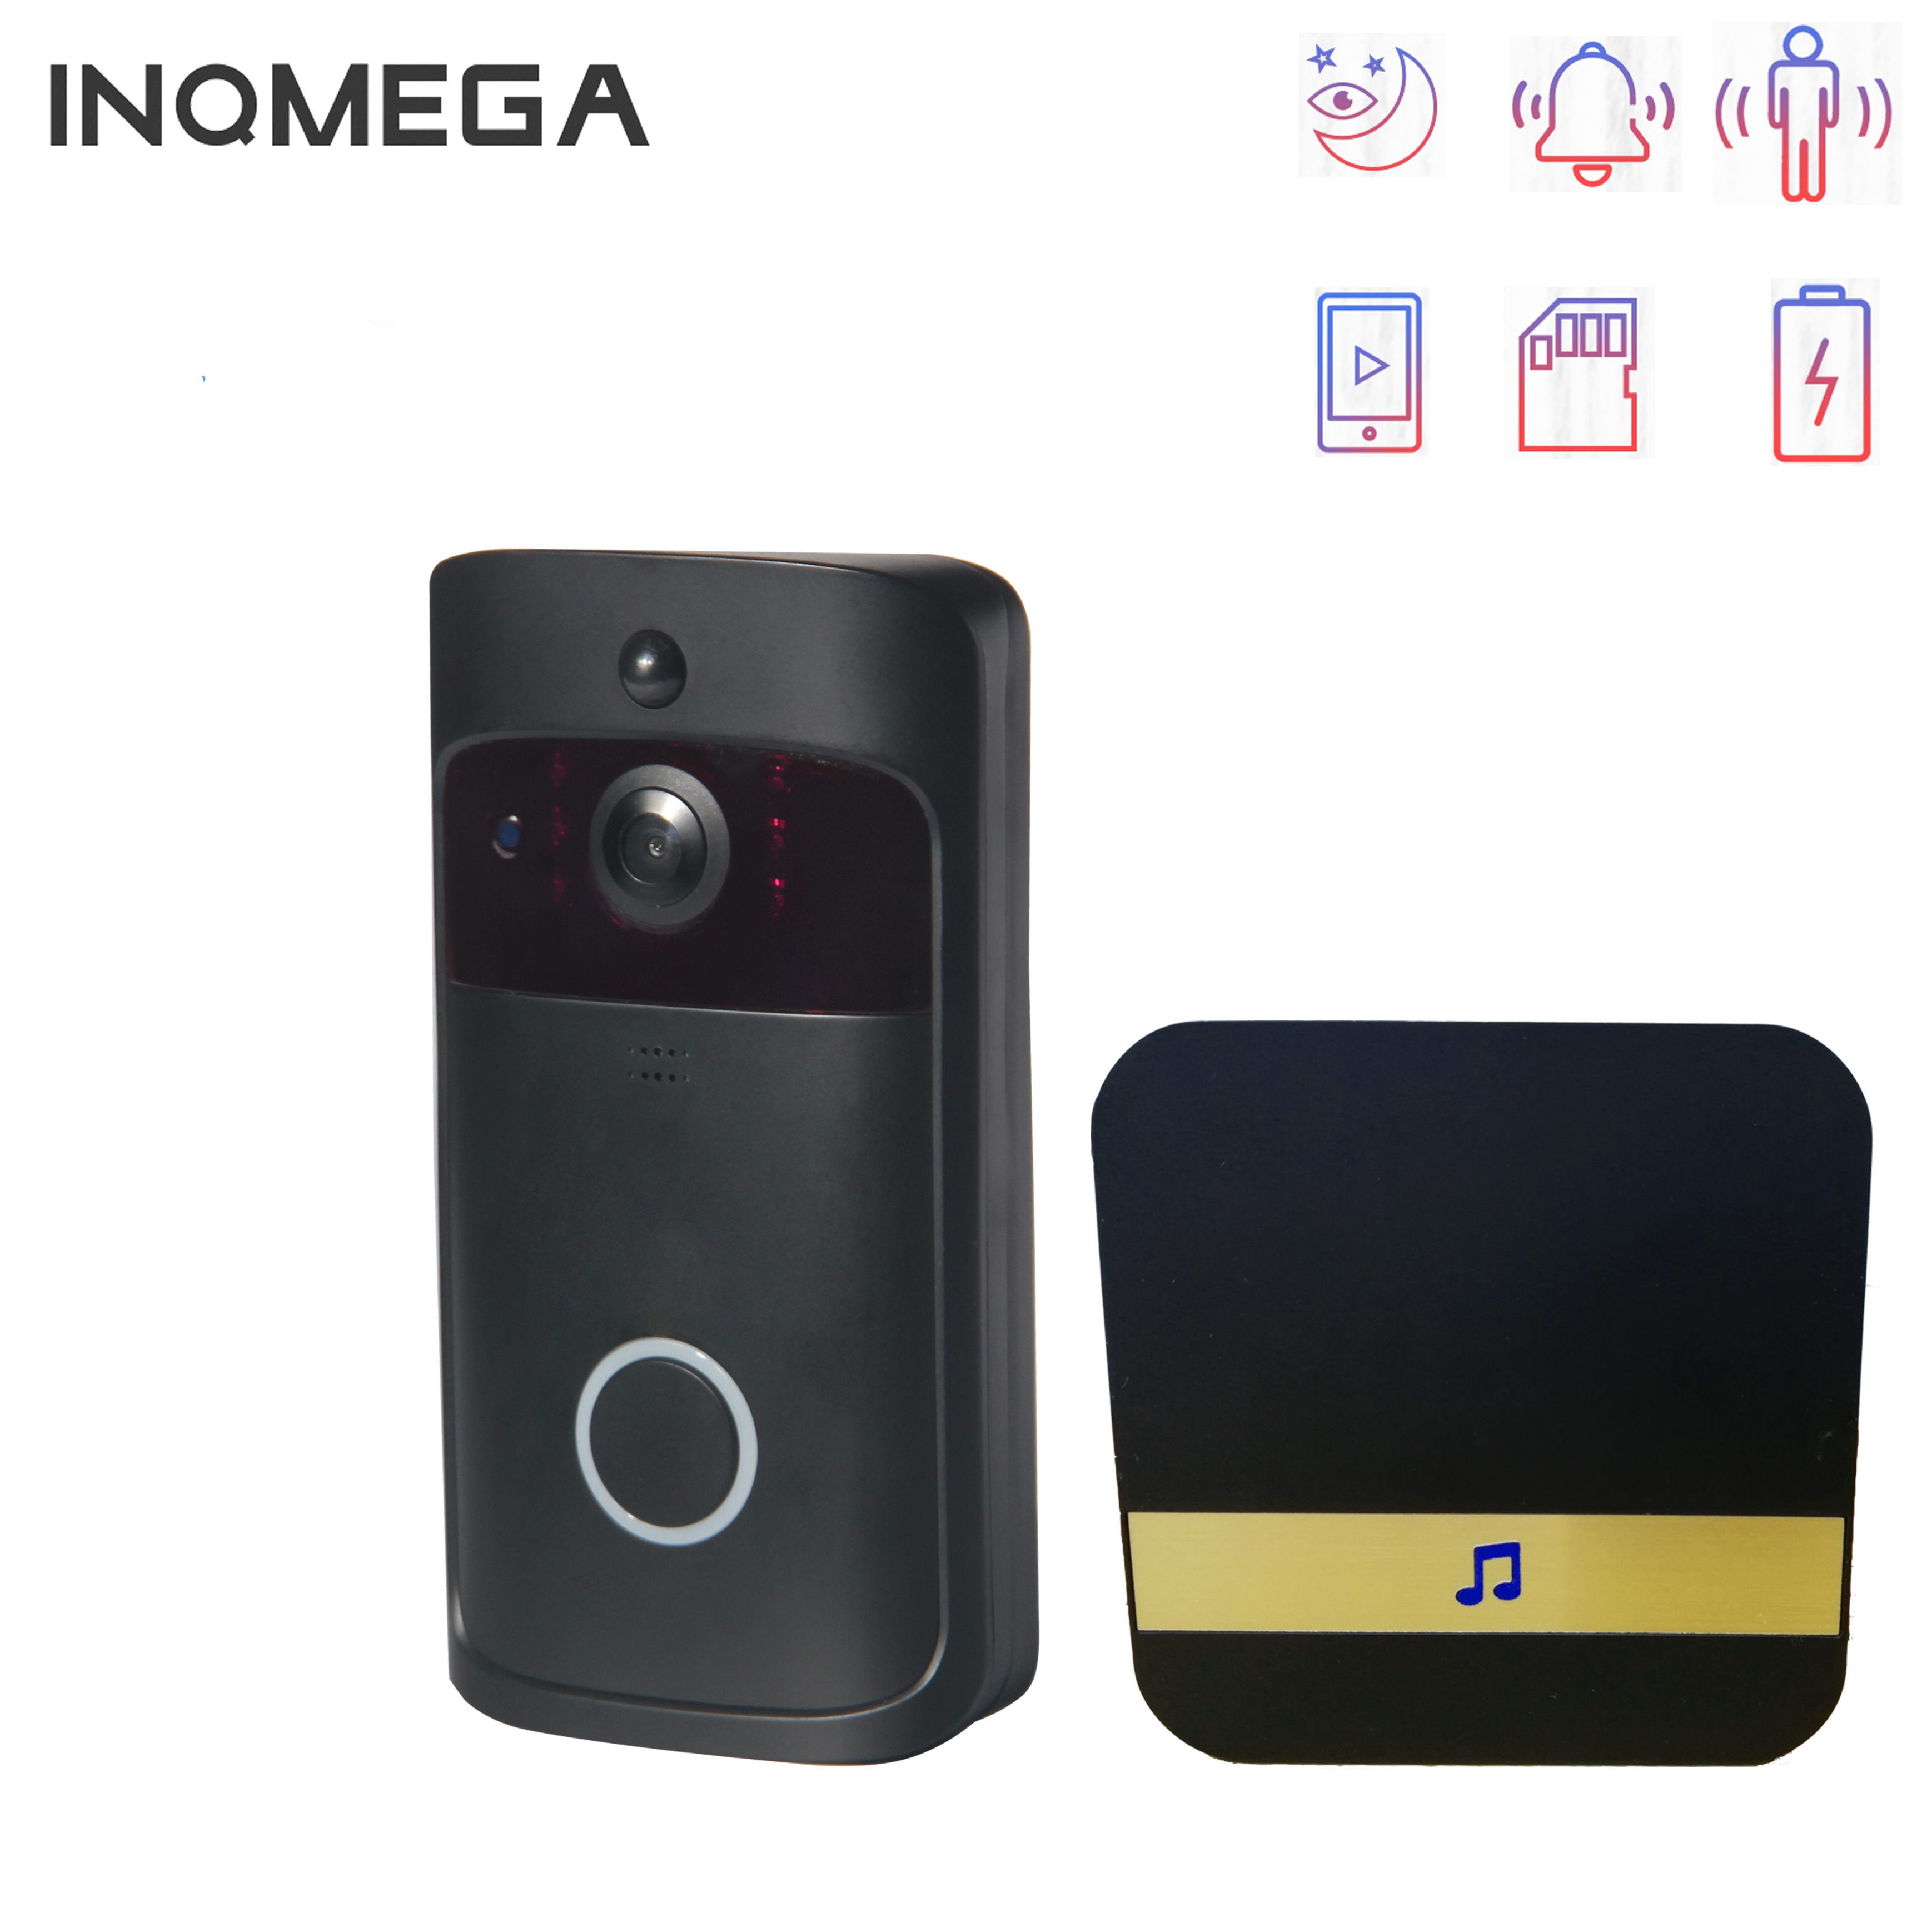 INQMEGA Smart IP Video Intercom WI-FI Video Door Phone Door Bell WIFI Doorbell Camera  IR Alarm Wireless Security Camera